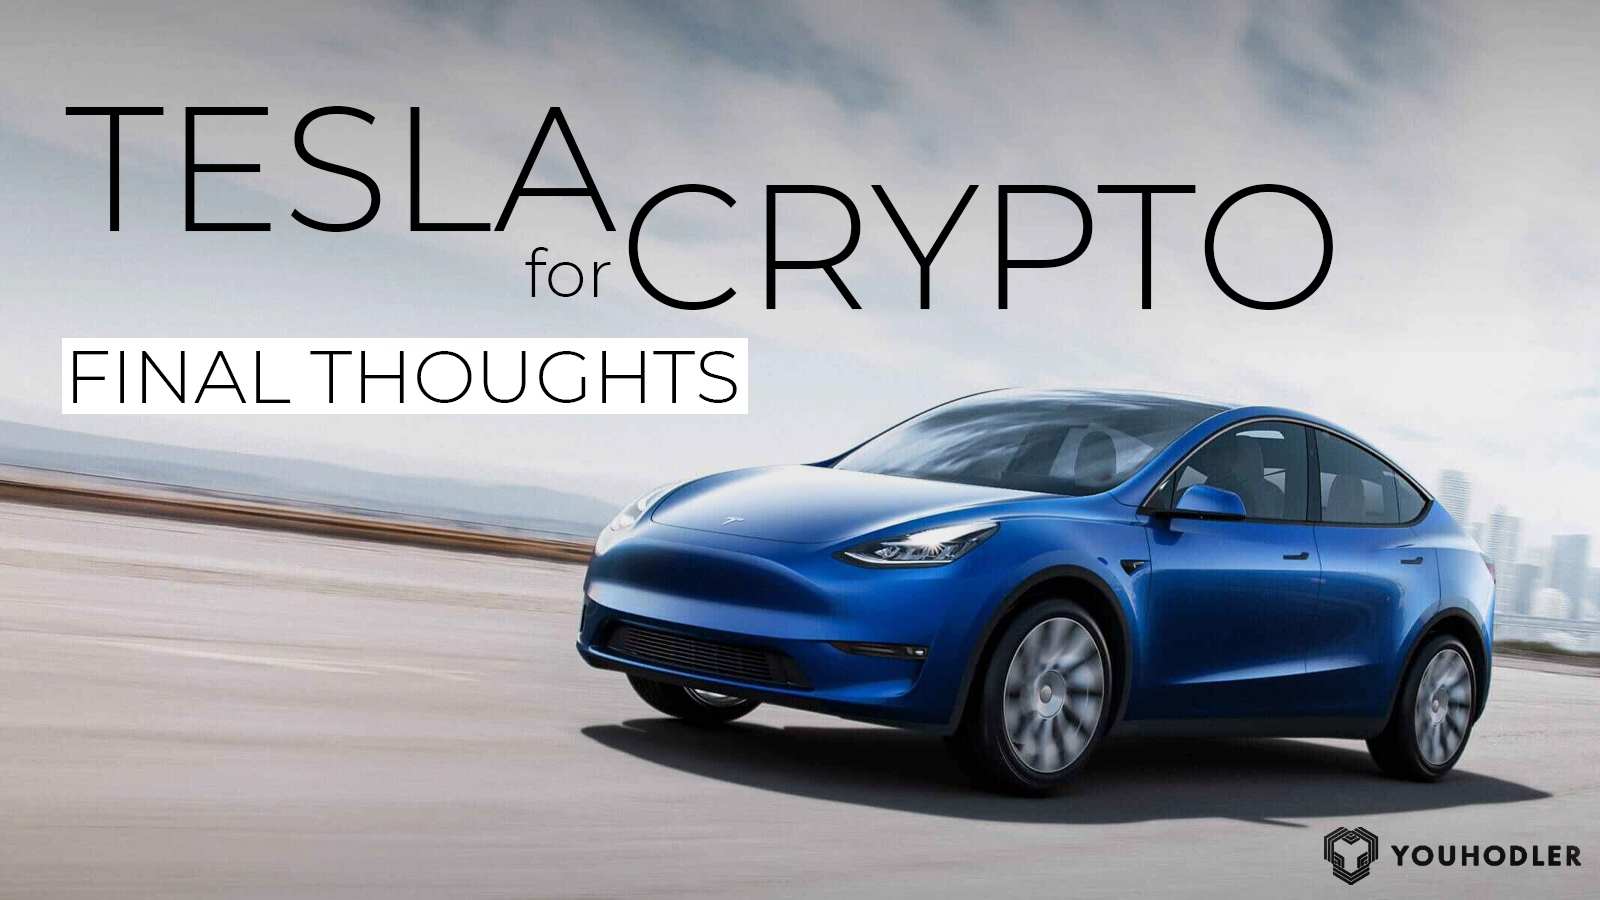 Tesla for Crypto with YouHodler